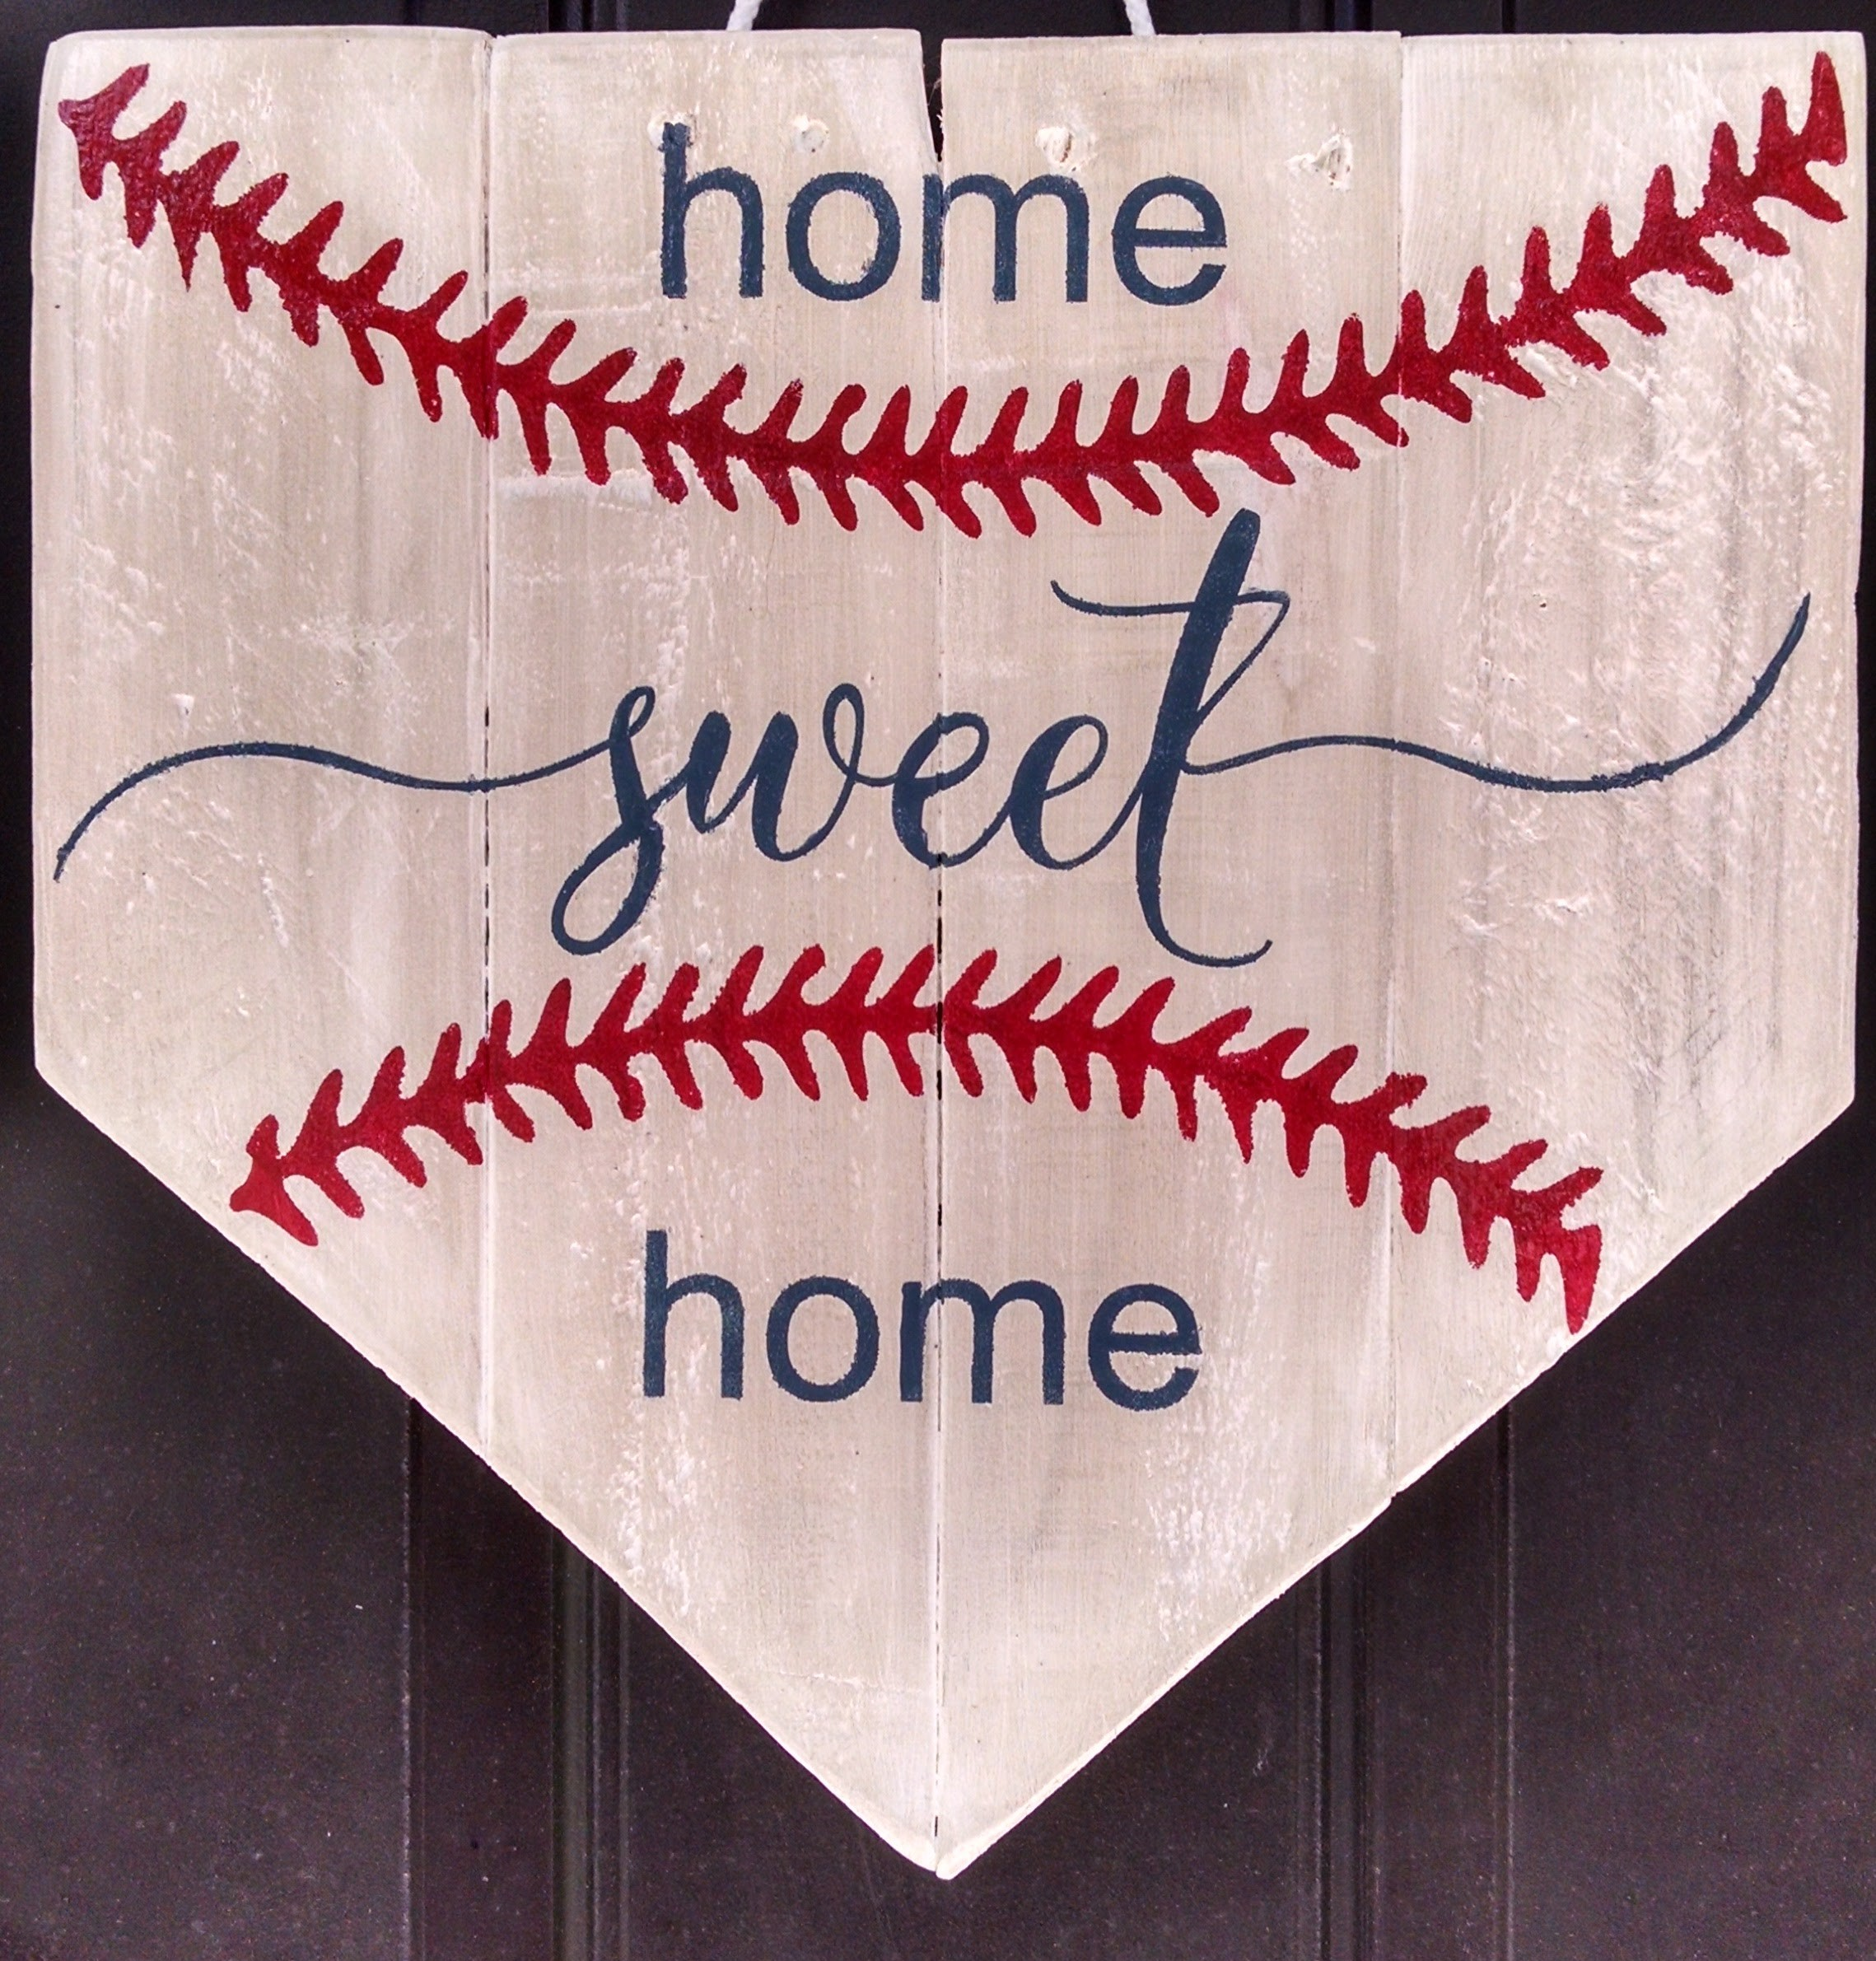 Home Sweet Home Baseball Sign.jpg